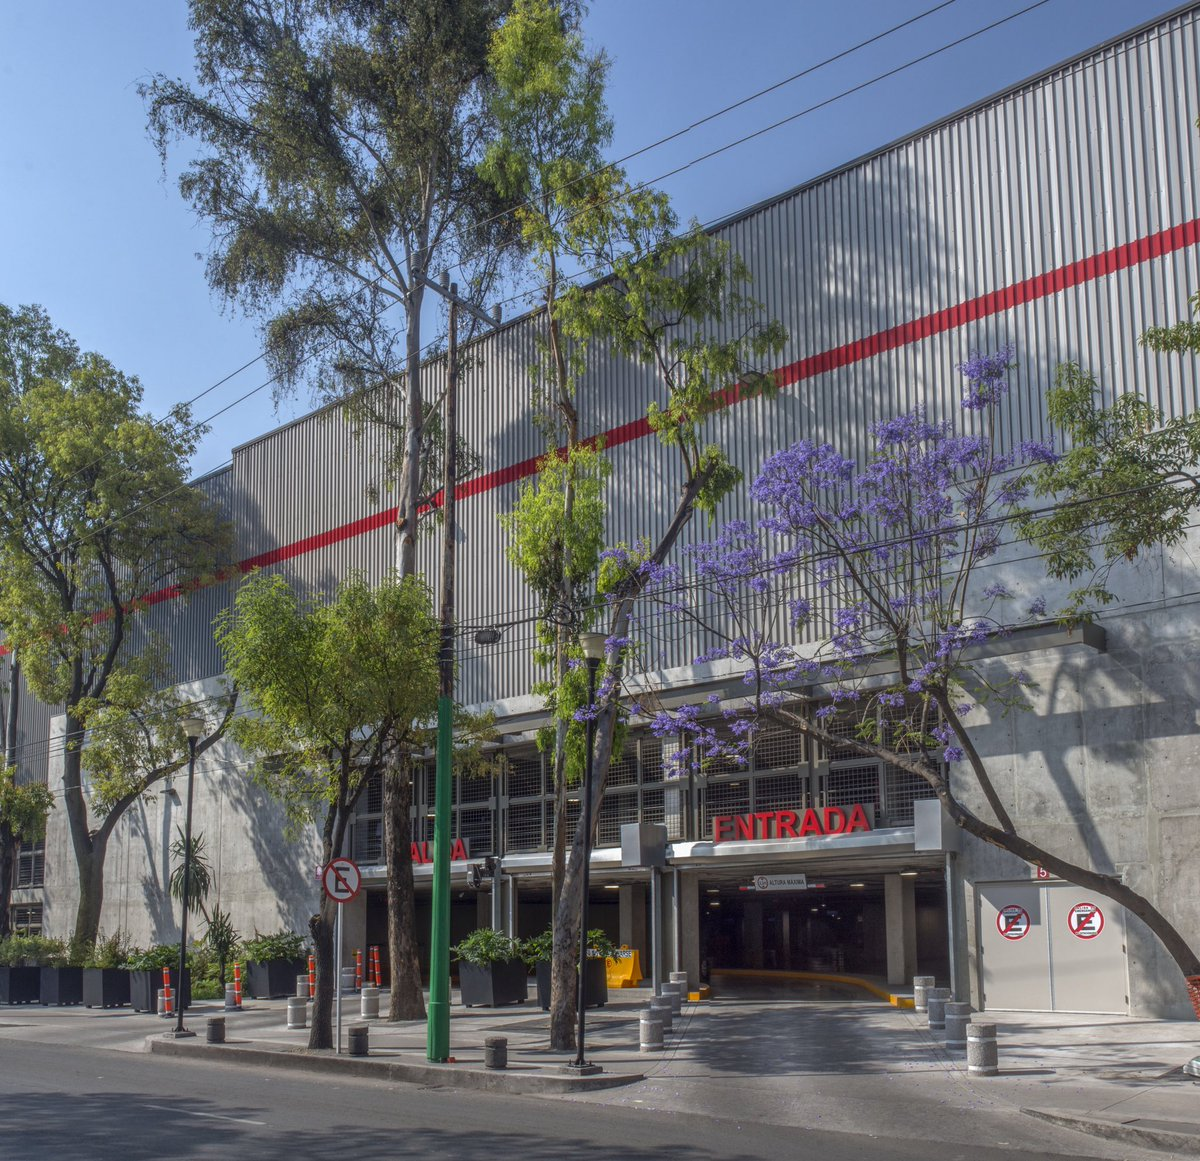 MG2 On Twitter Photos From The New Costco Warehouse In Mexico City Multi Story Building Has Four Autowalks And An Abundance Of Exterior Foliage